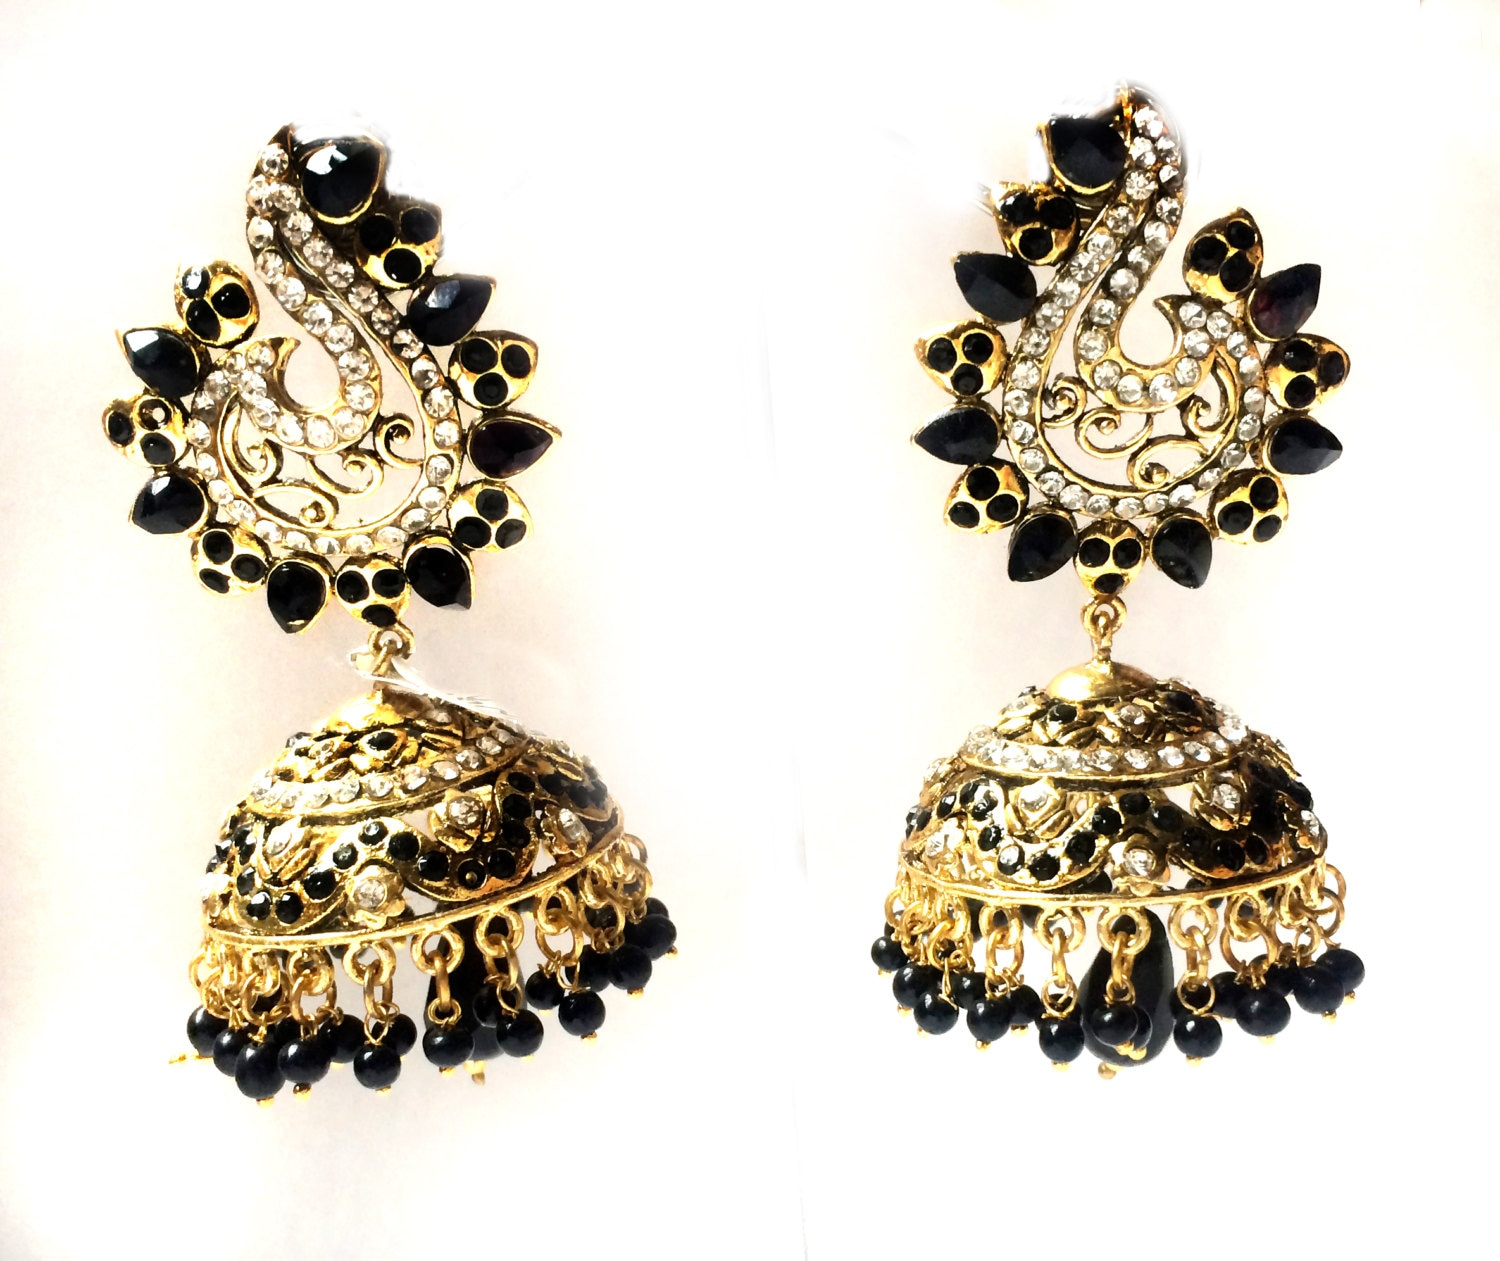 jhumki earrings traditional gold index oxidised green rajasthani floral collection wedding color design